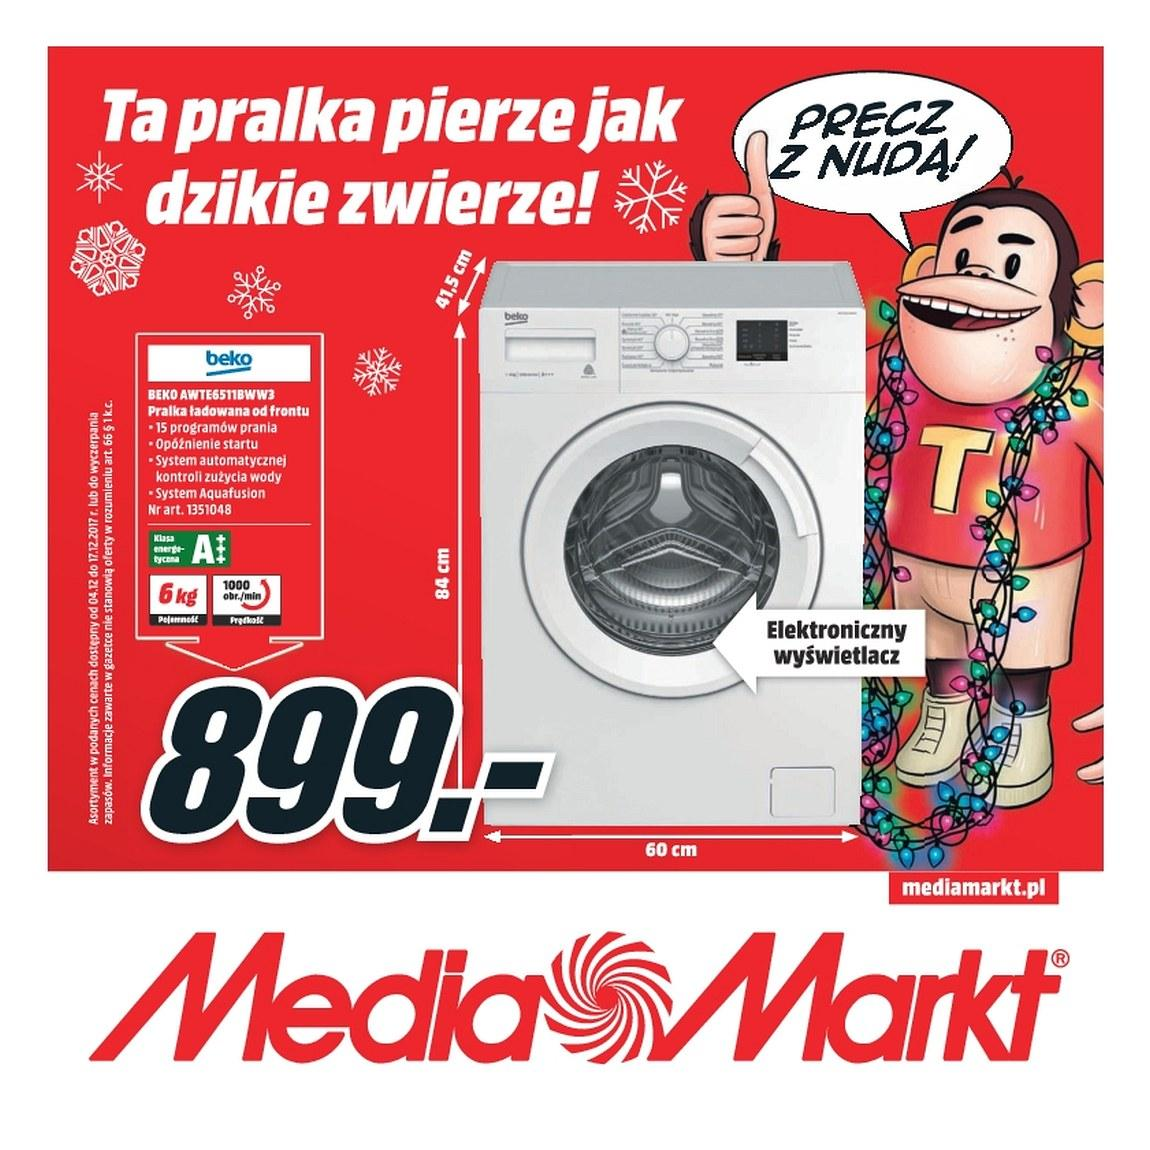 Gazetka promocyjna Media Markt do 17/12/2017 str.0